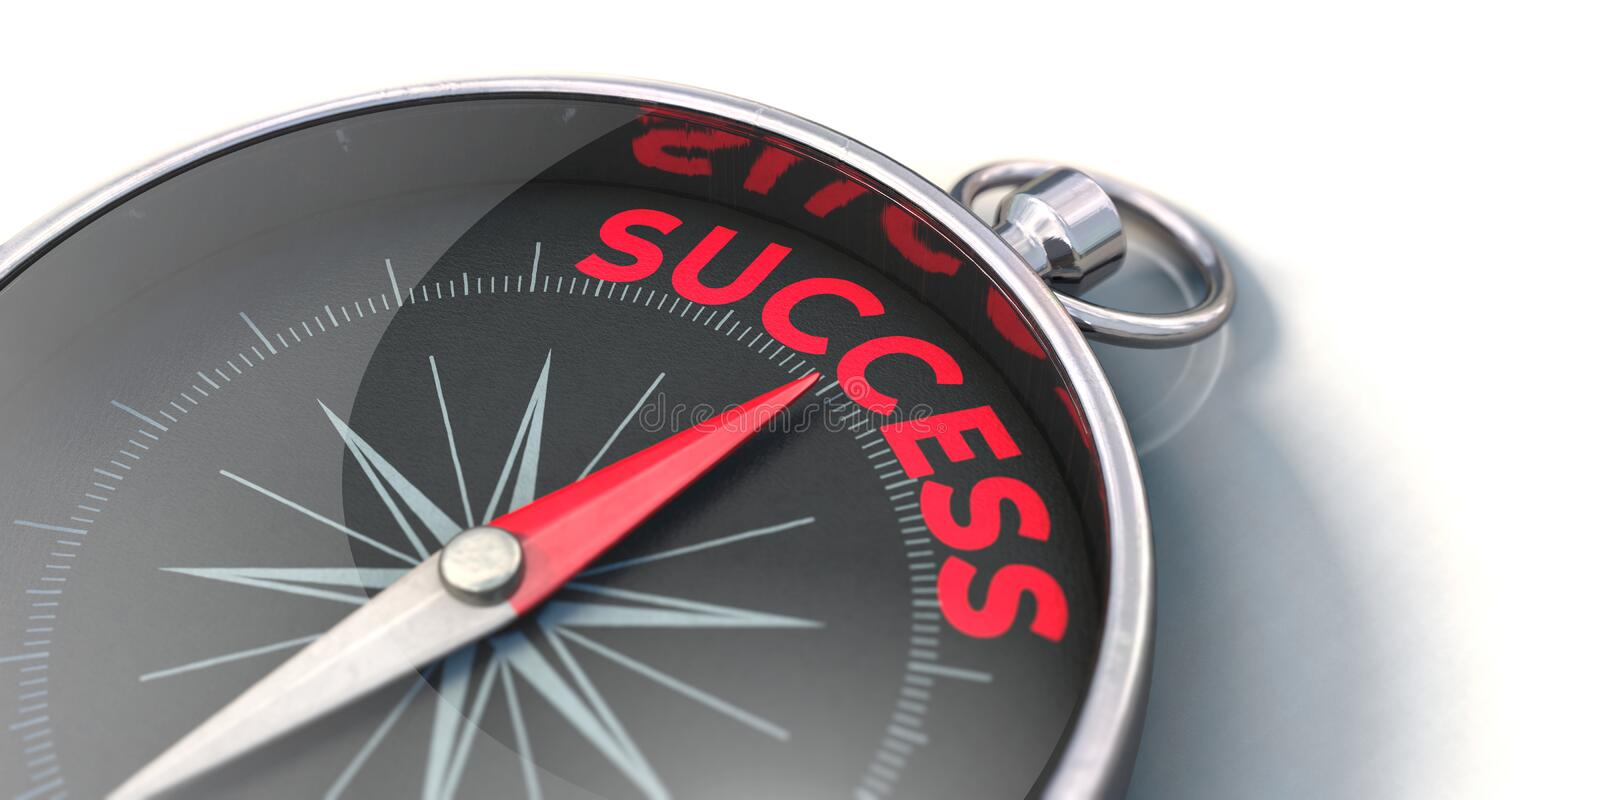 Compass points towards success. 3D illustration, compass with a red needle and red letters stock illustration